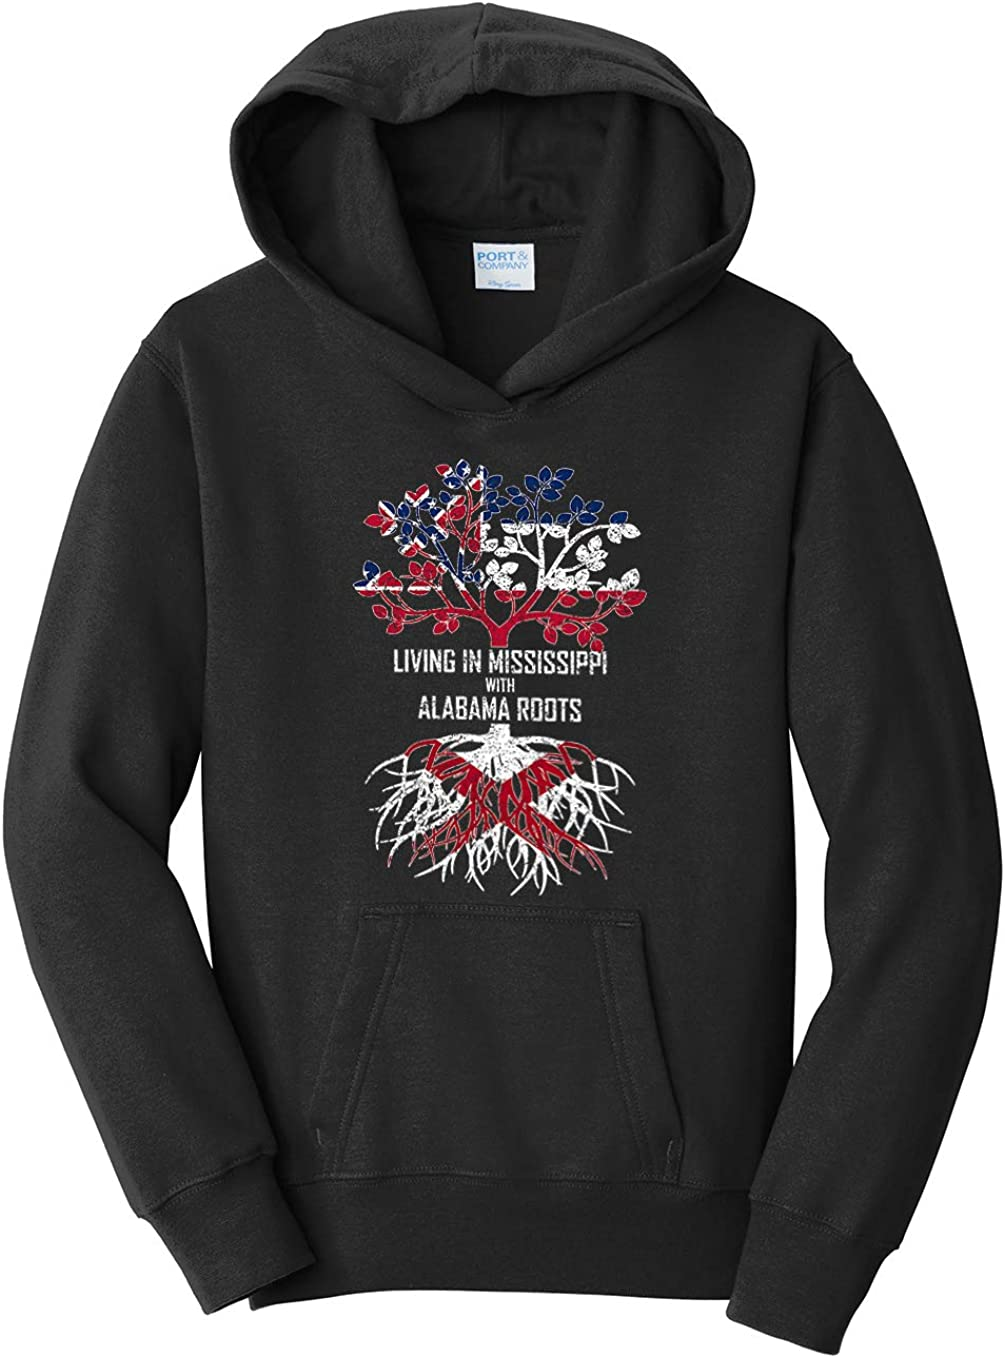 Tenacitee Girls Living in Mississippi with Alabama Roots Hooded Sweatshirt